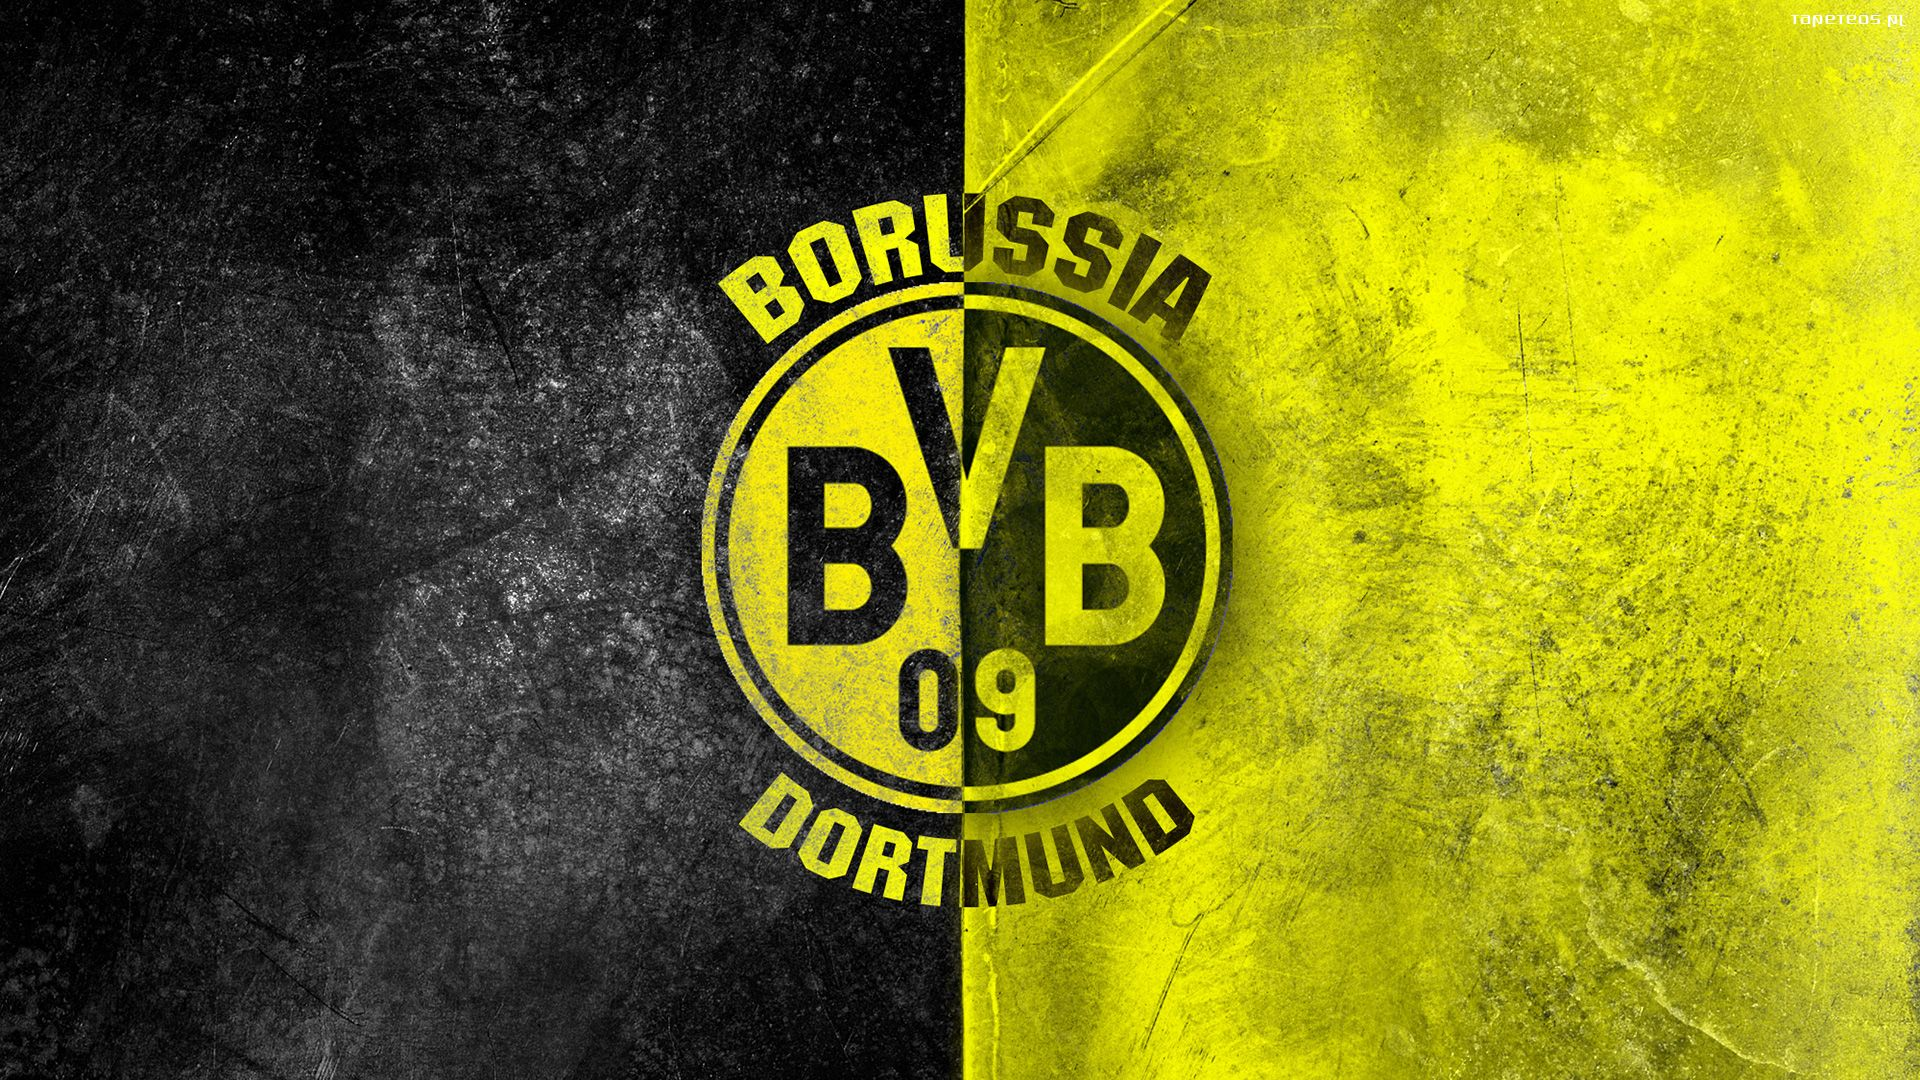 borussia dortmund 1920x1080 005 tapety na pulpit. Black Bedroom Furniture Sets. Home Design Ideas